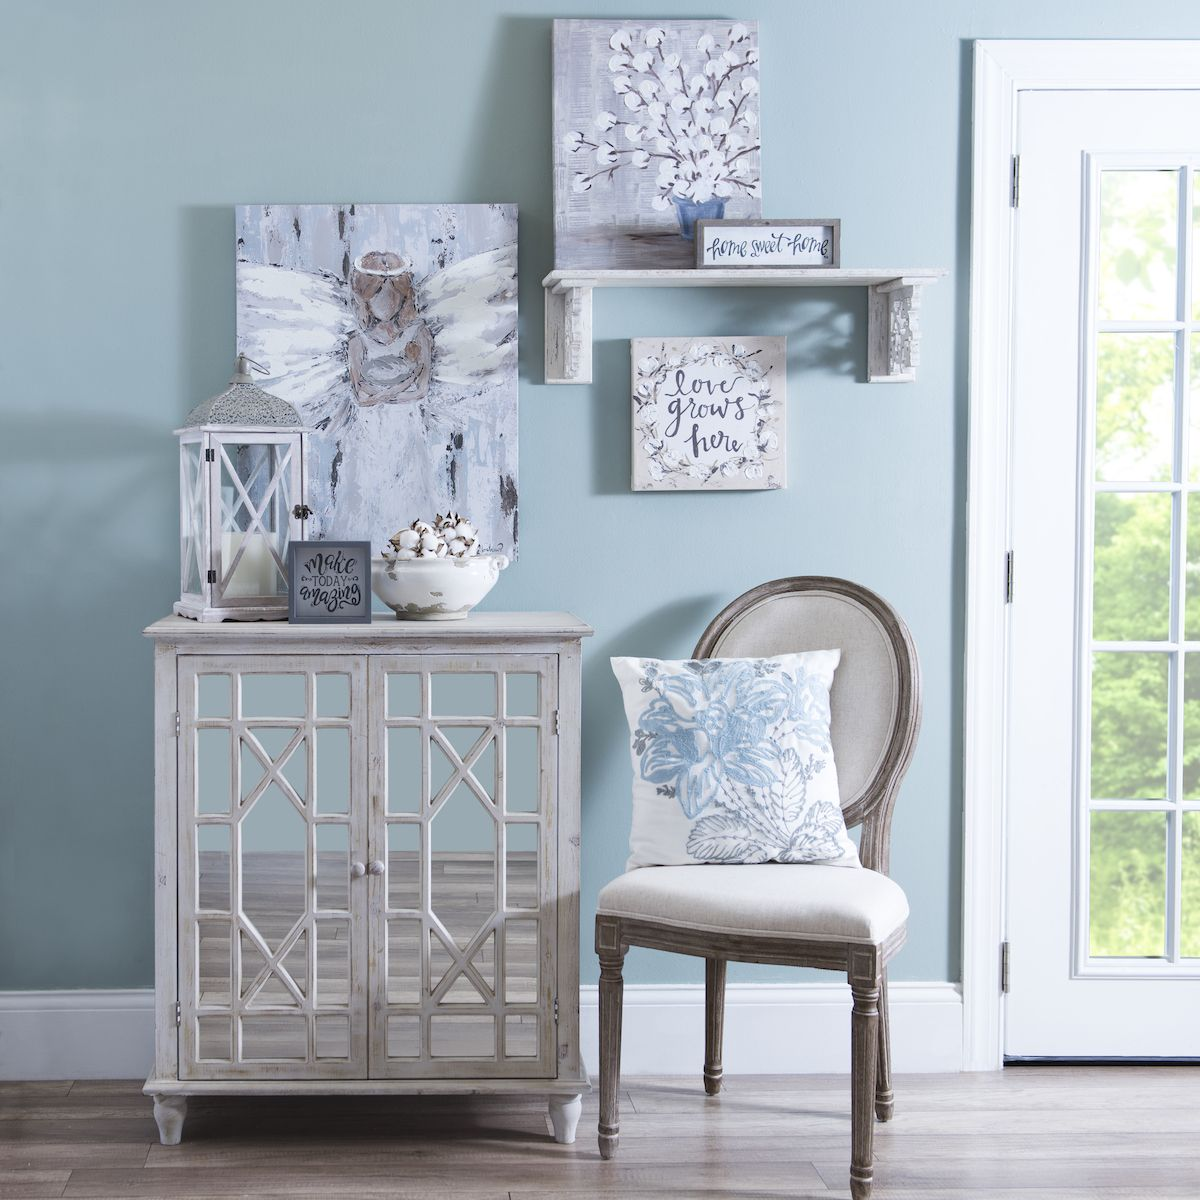 With Kirkland's, create an entryway that's cozy and ... on Kirkland's Decor Home Accents id=33476